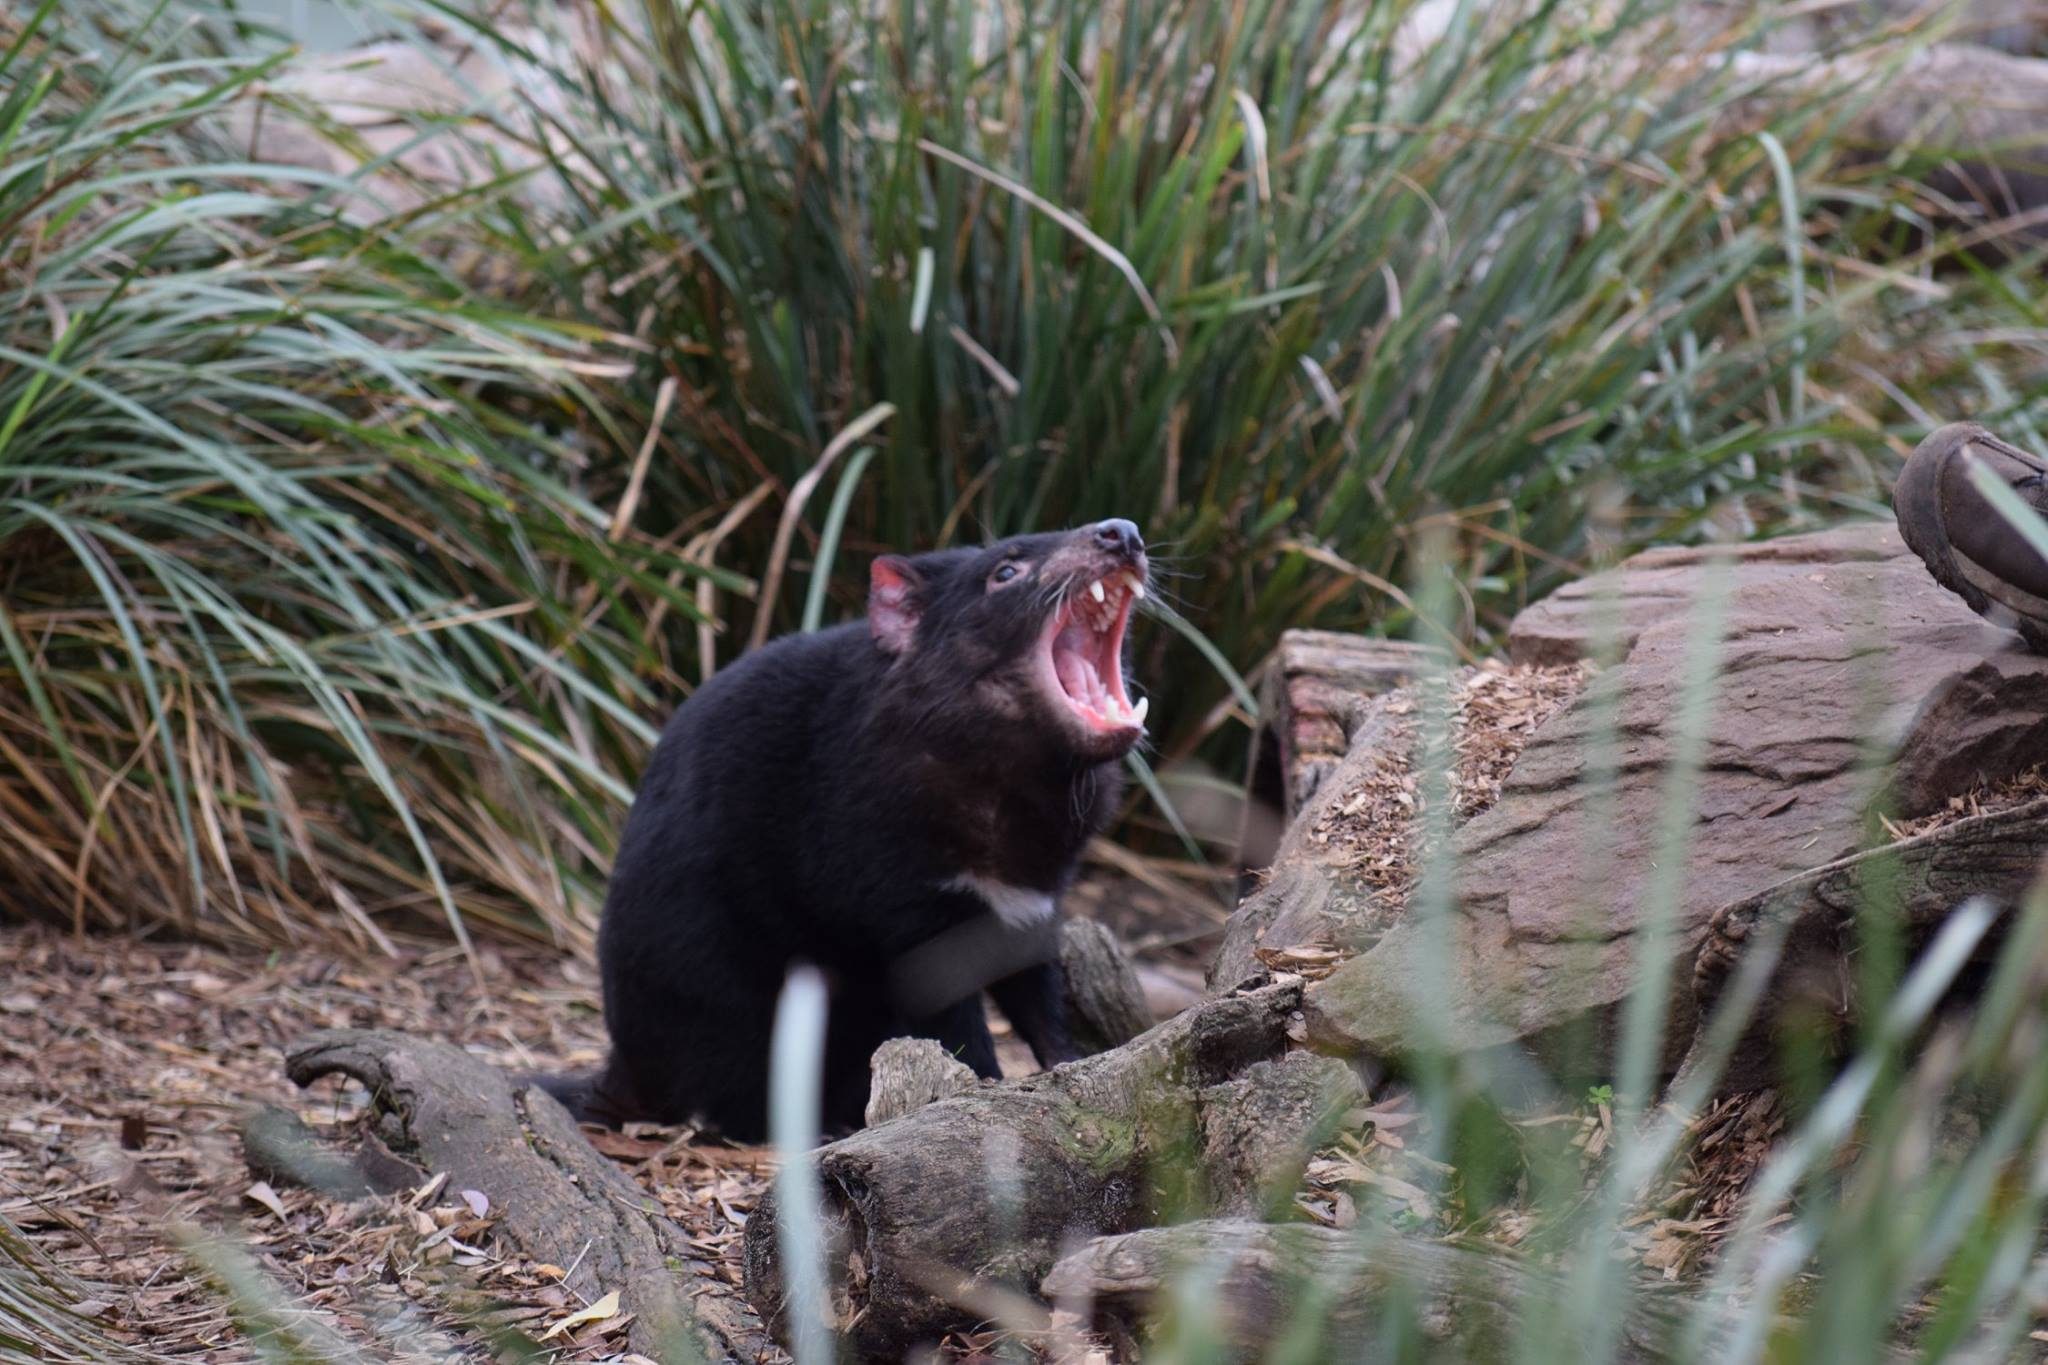 We Tassie Devils approve of Salesforce spreading its wings here!